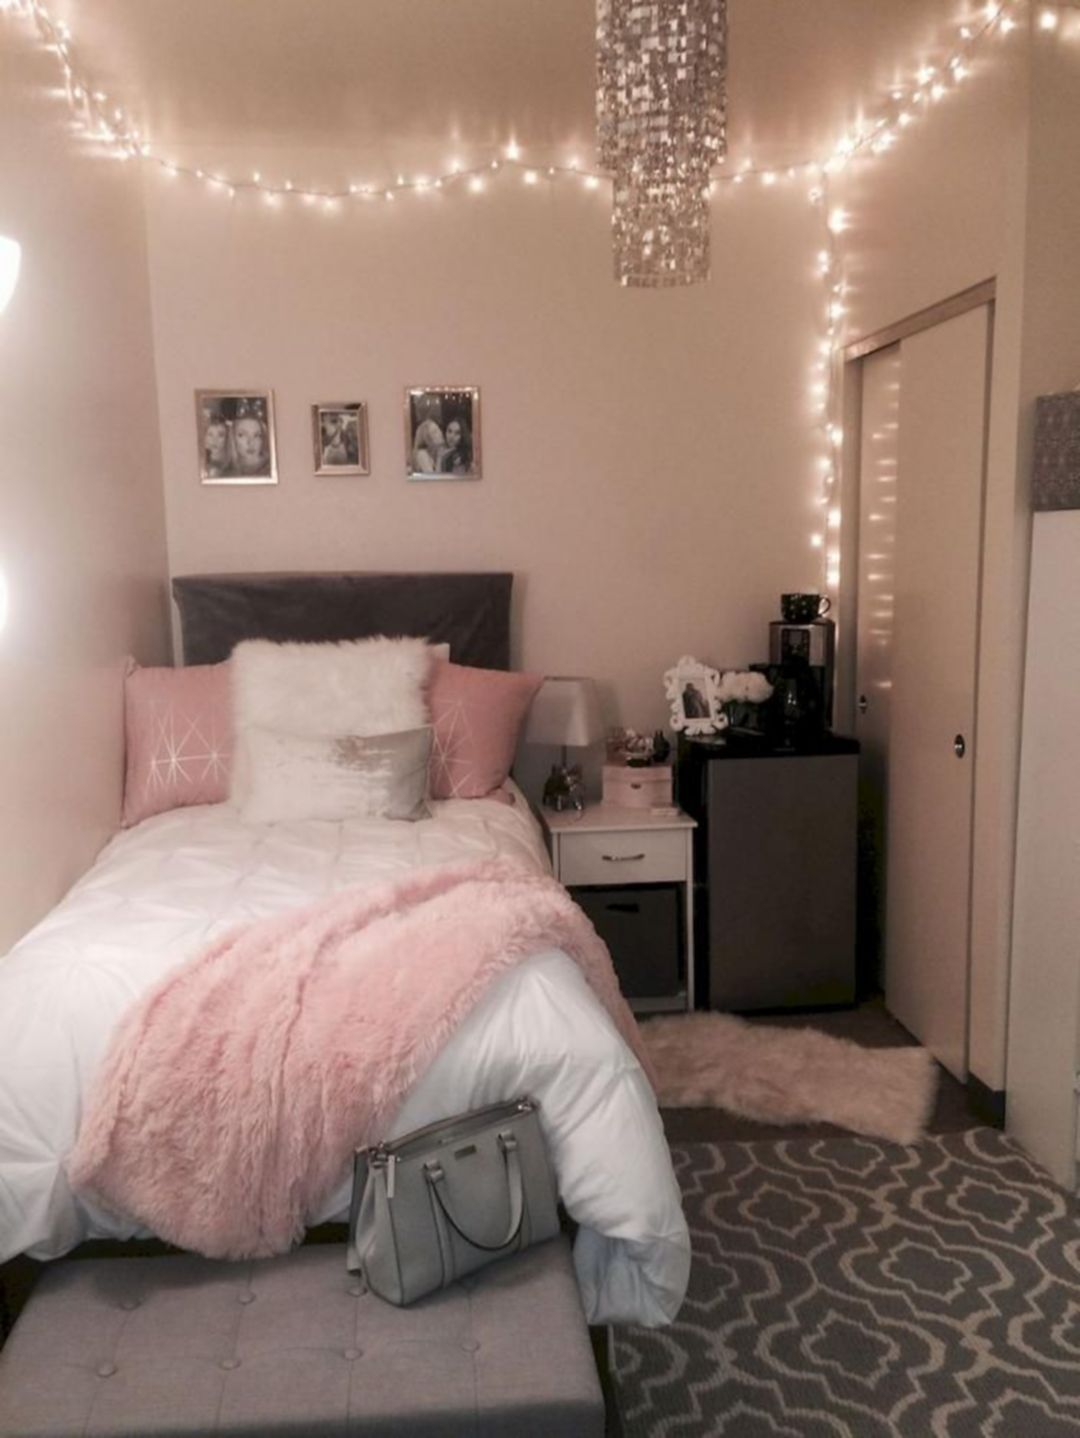 Top Best And Wonderful 20 Diy Bedroom Decorating Ideas That You Do Can By Yourself Goodsgn Small Bedroom Small Room Bedroom Woman Bedroom